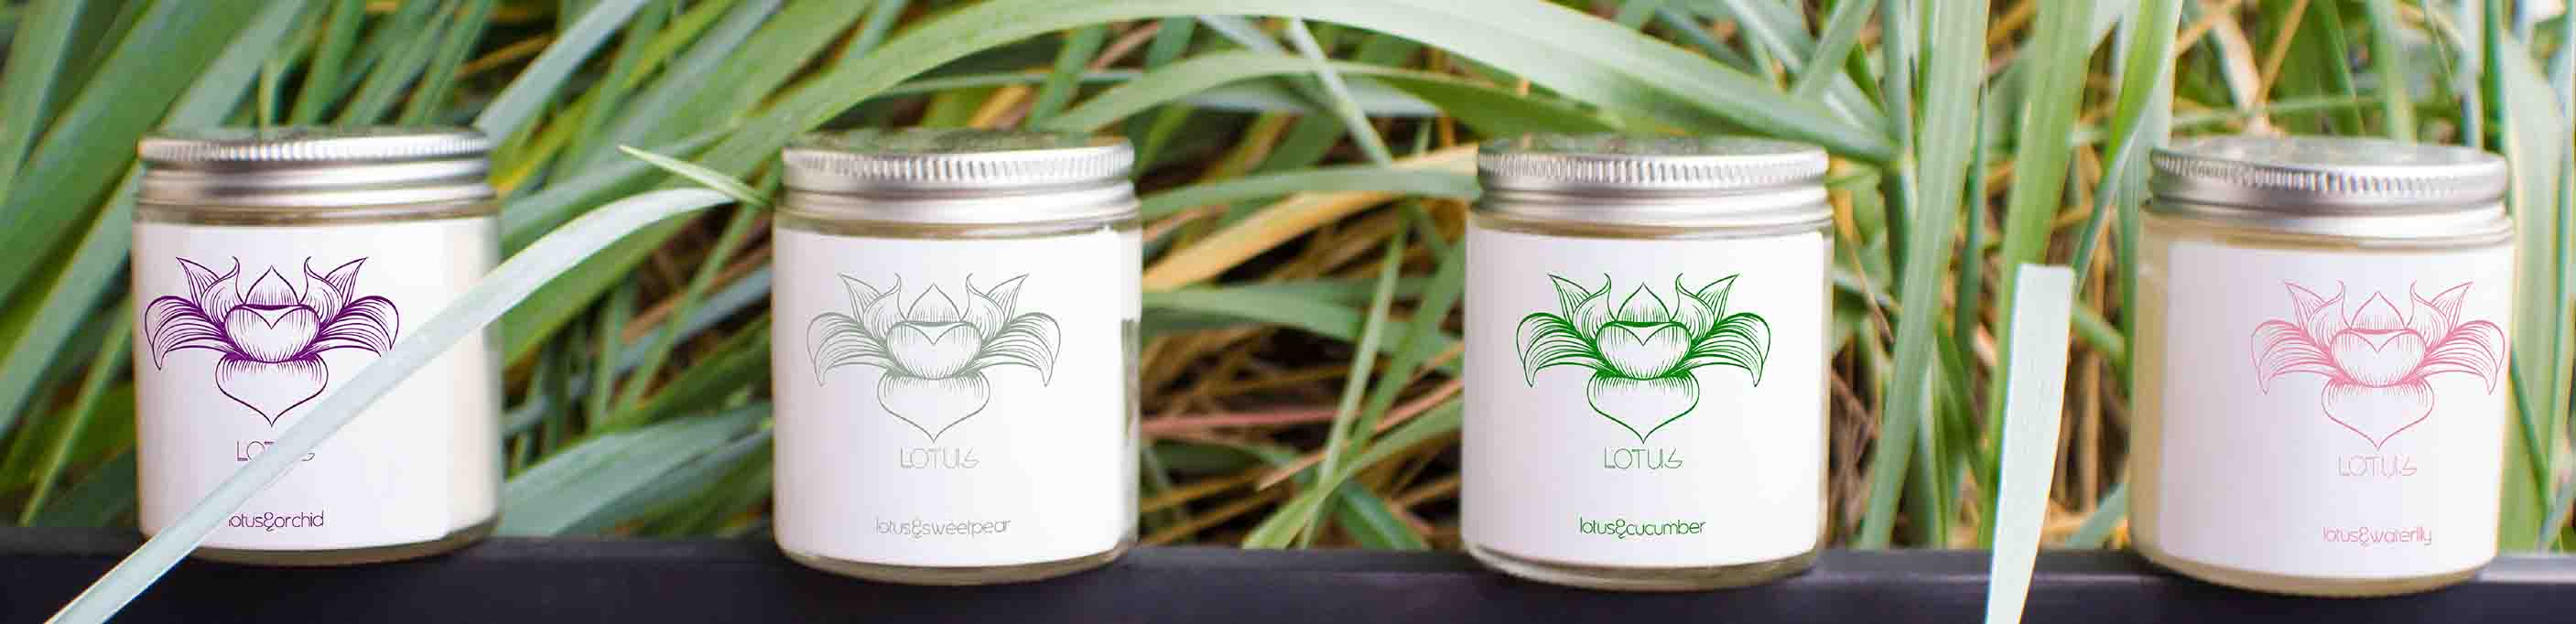 Candle Jars - Larger Sizes